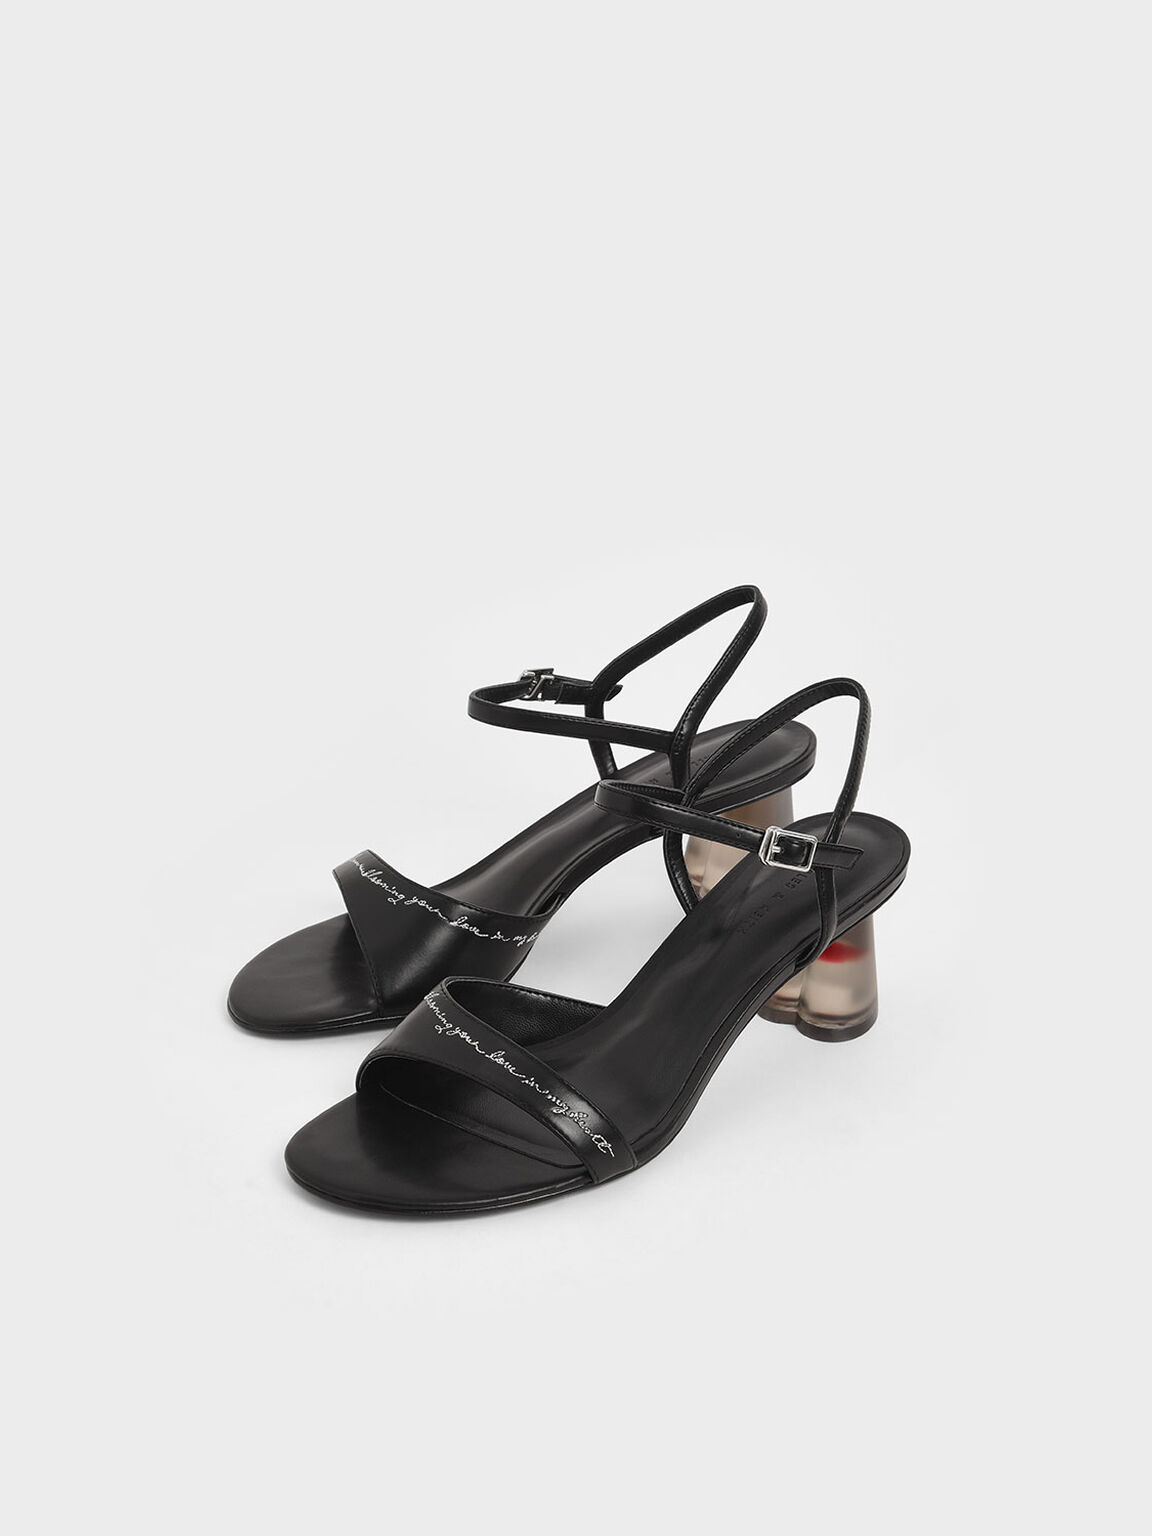 Embroidered Lucite Sculptural Heel Sandals, Black, hi-res